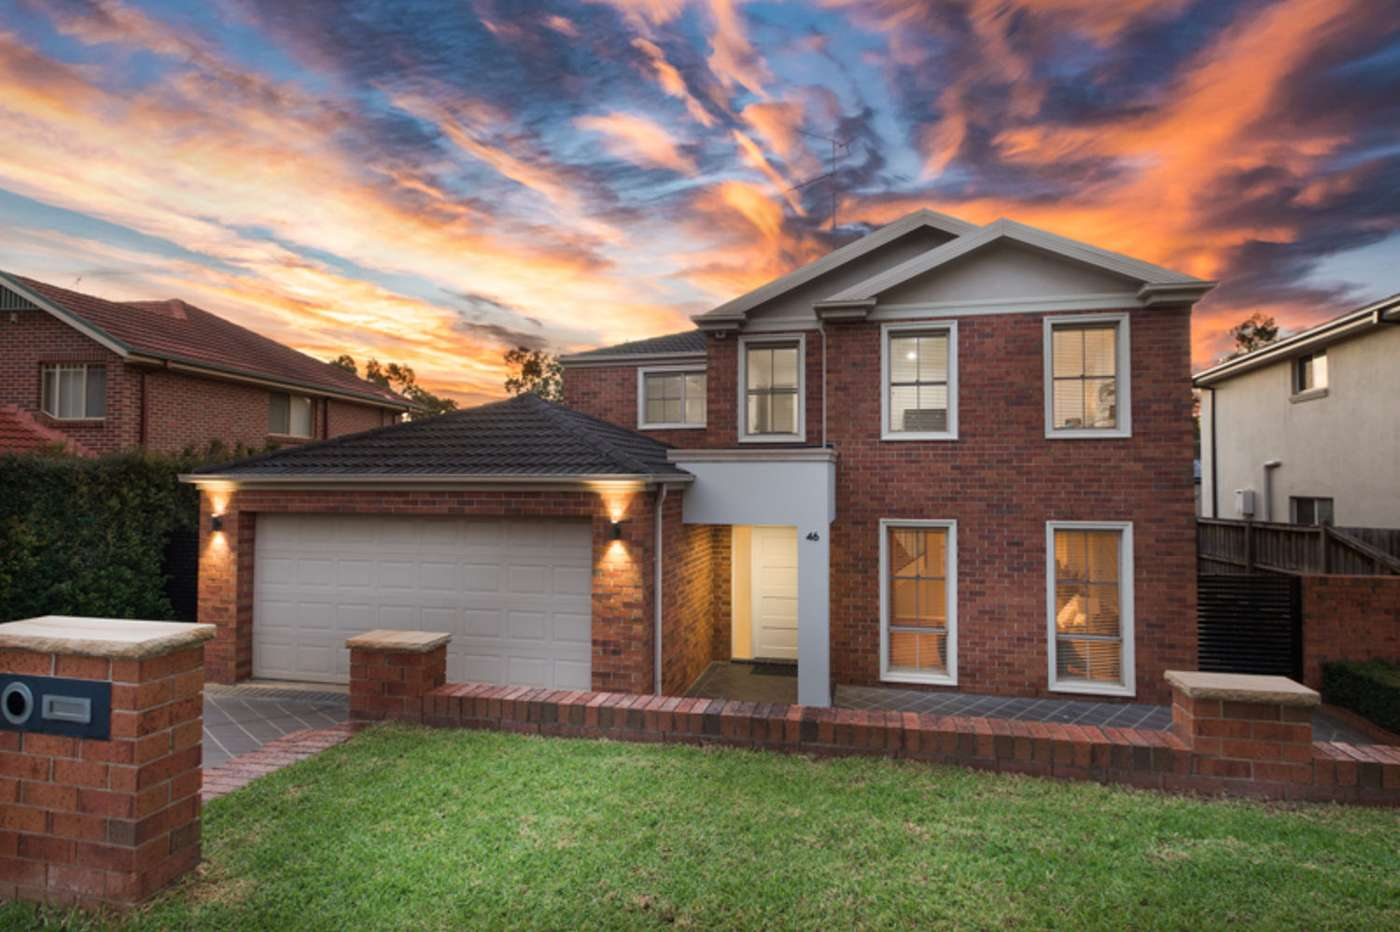 Main view of Homely house listing, 46 Perisher Road, Beaumont Hills, NSW 2155